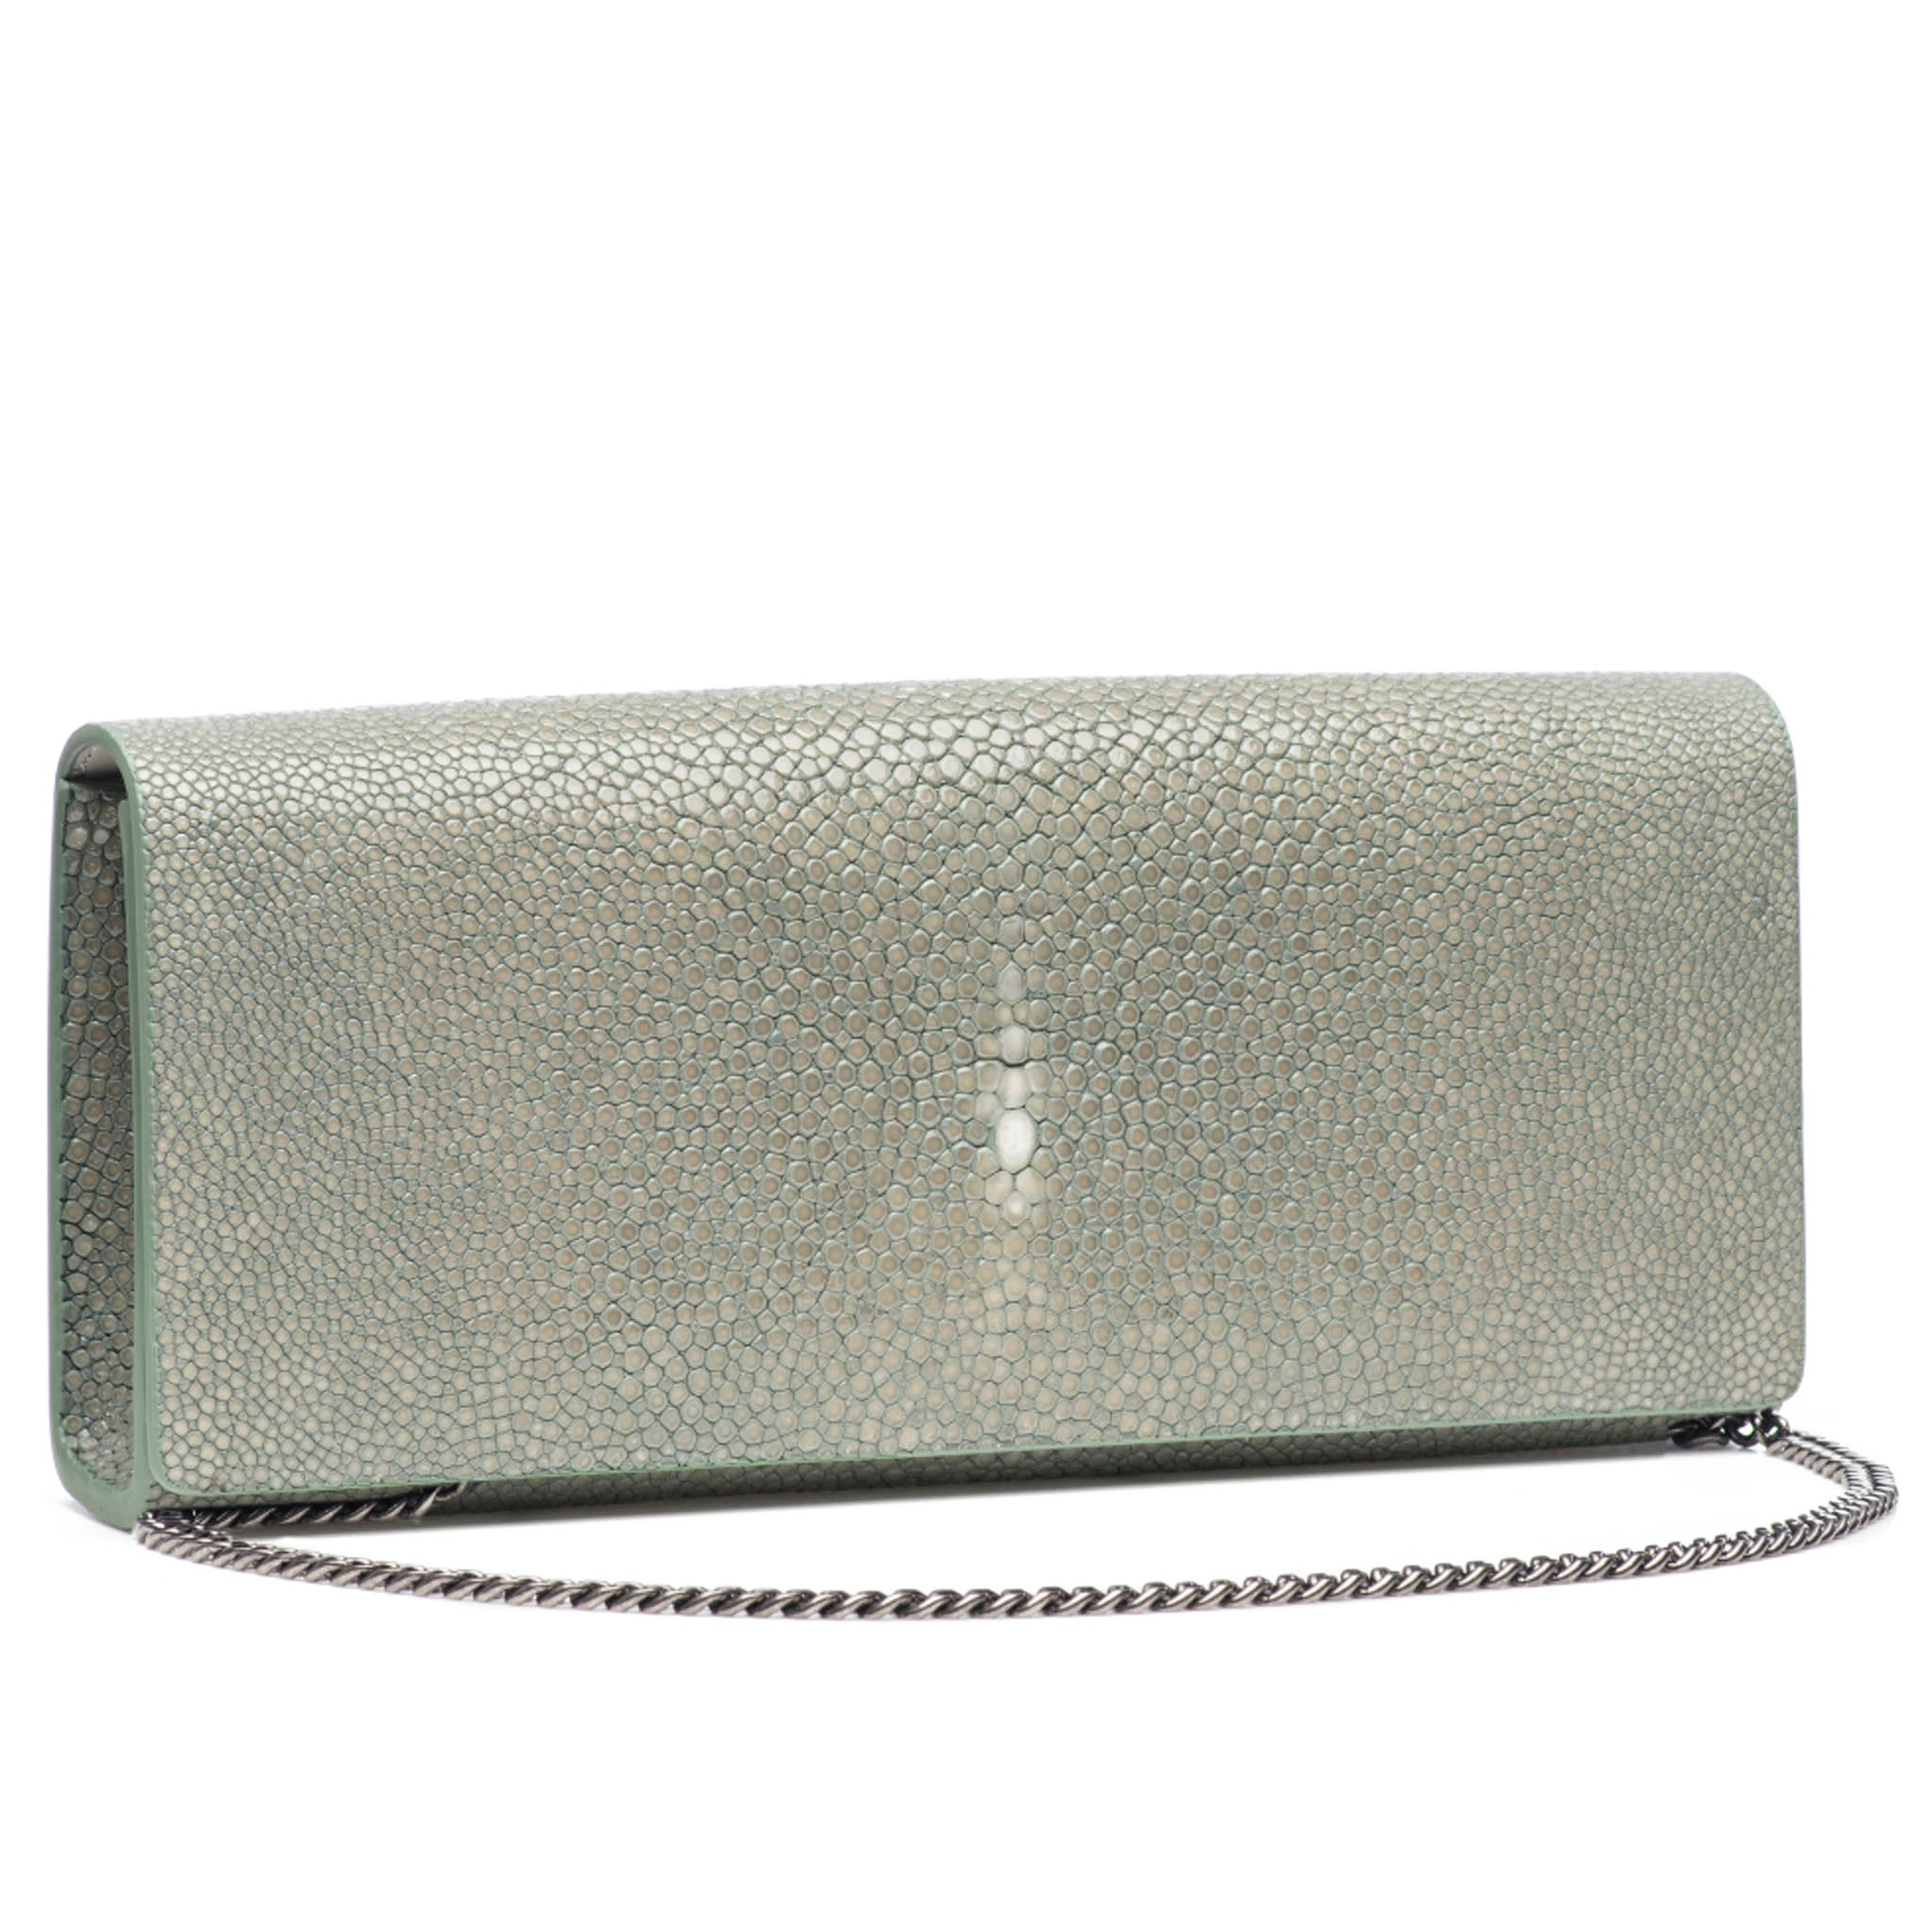 Cement Shagreen Clutch Bag Front View with Chain Cleo - Vivo Direct